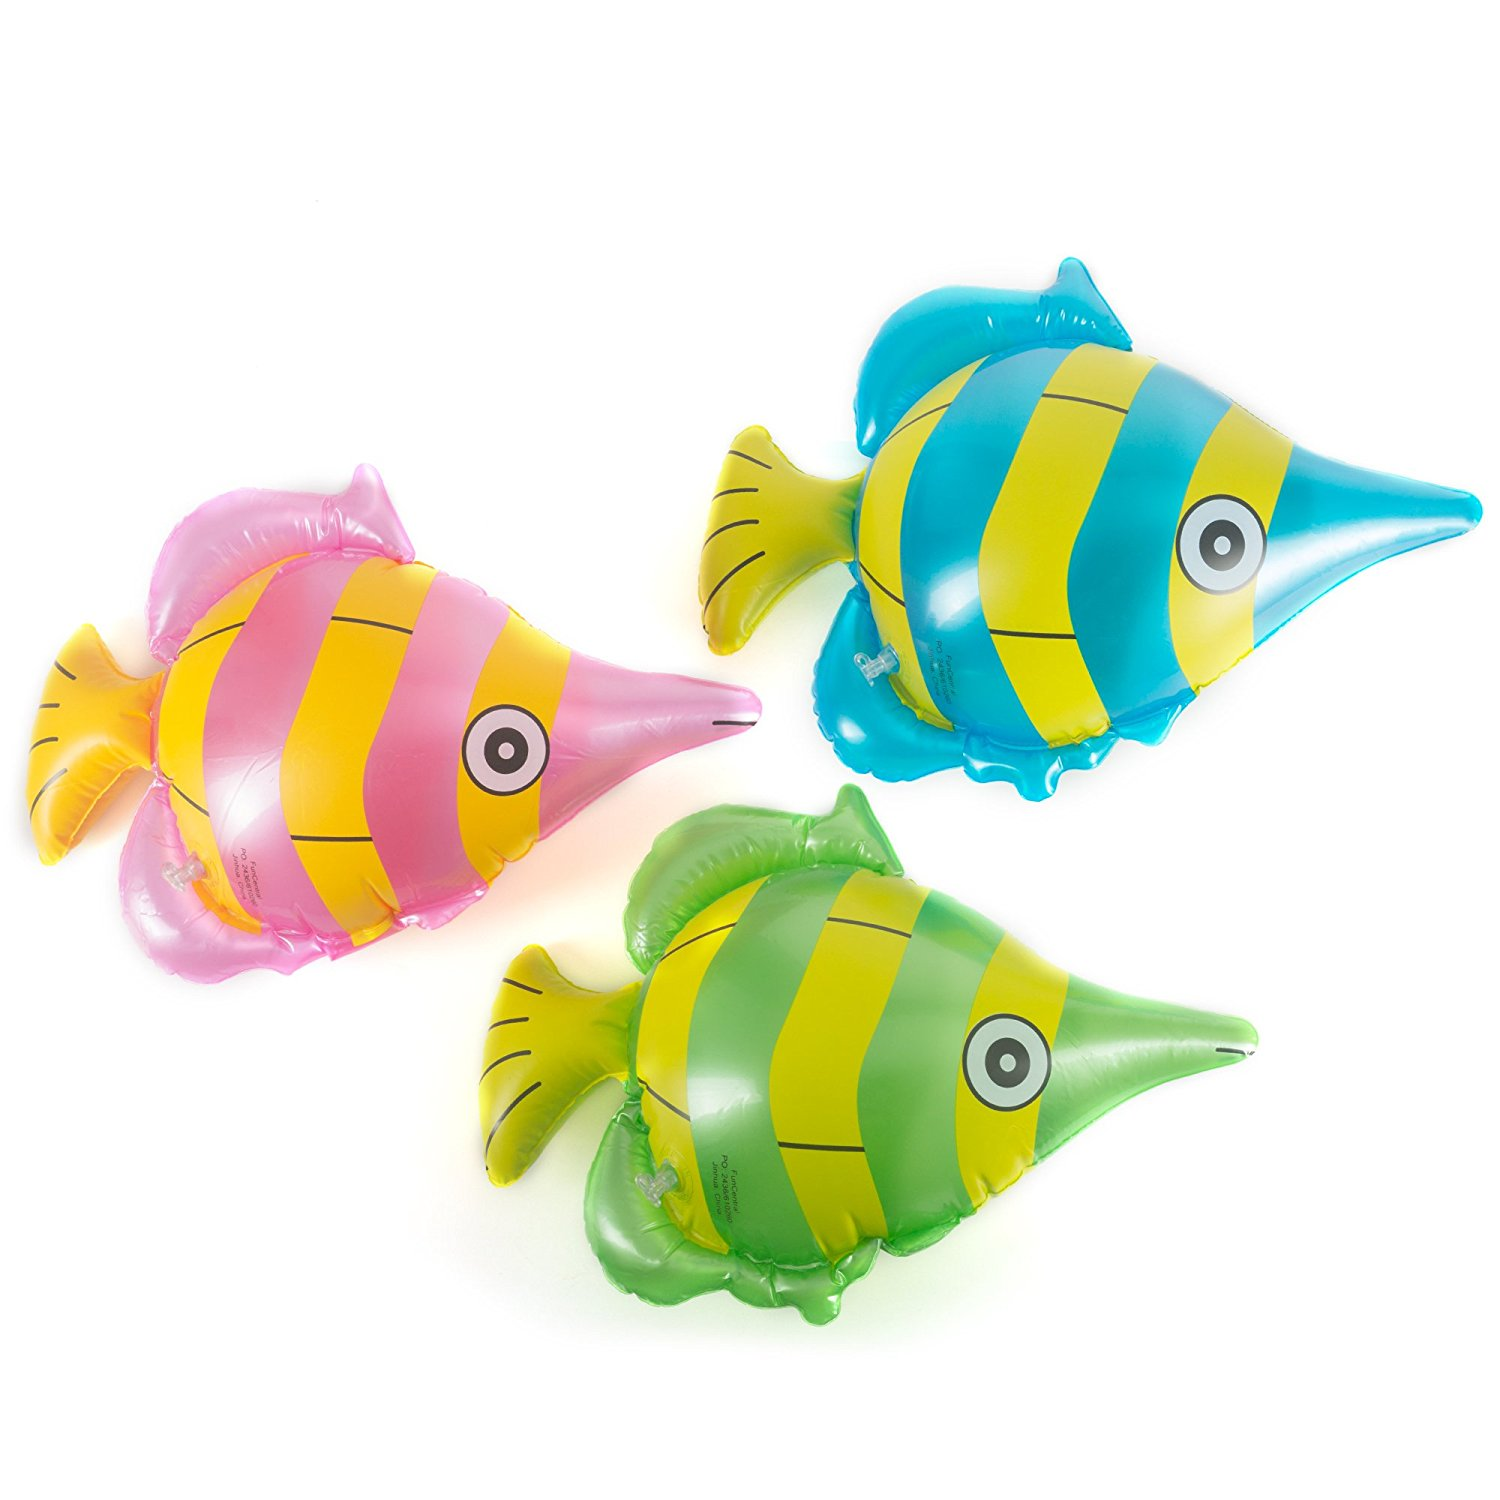 Fun Central (AZ901) 12pack 14inch Inflatable Tropical Fish Toy, Fun Toys, Inflatable Toys, Toy Inflatable, Inflatable Beach Toys, Toy Fish - Assorted